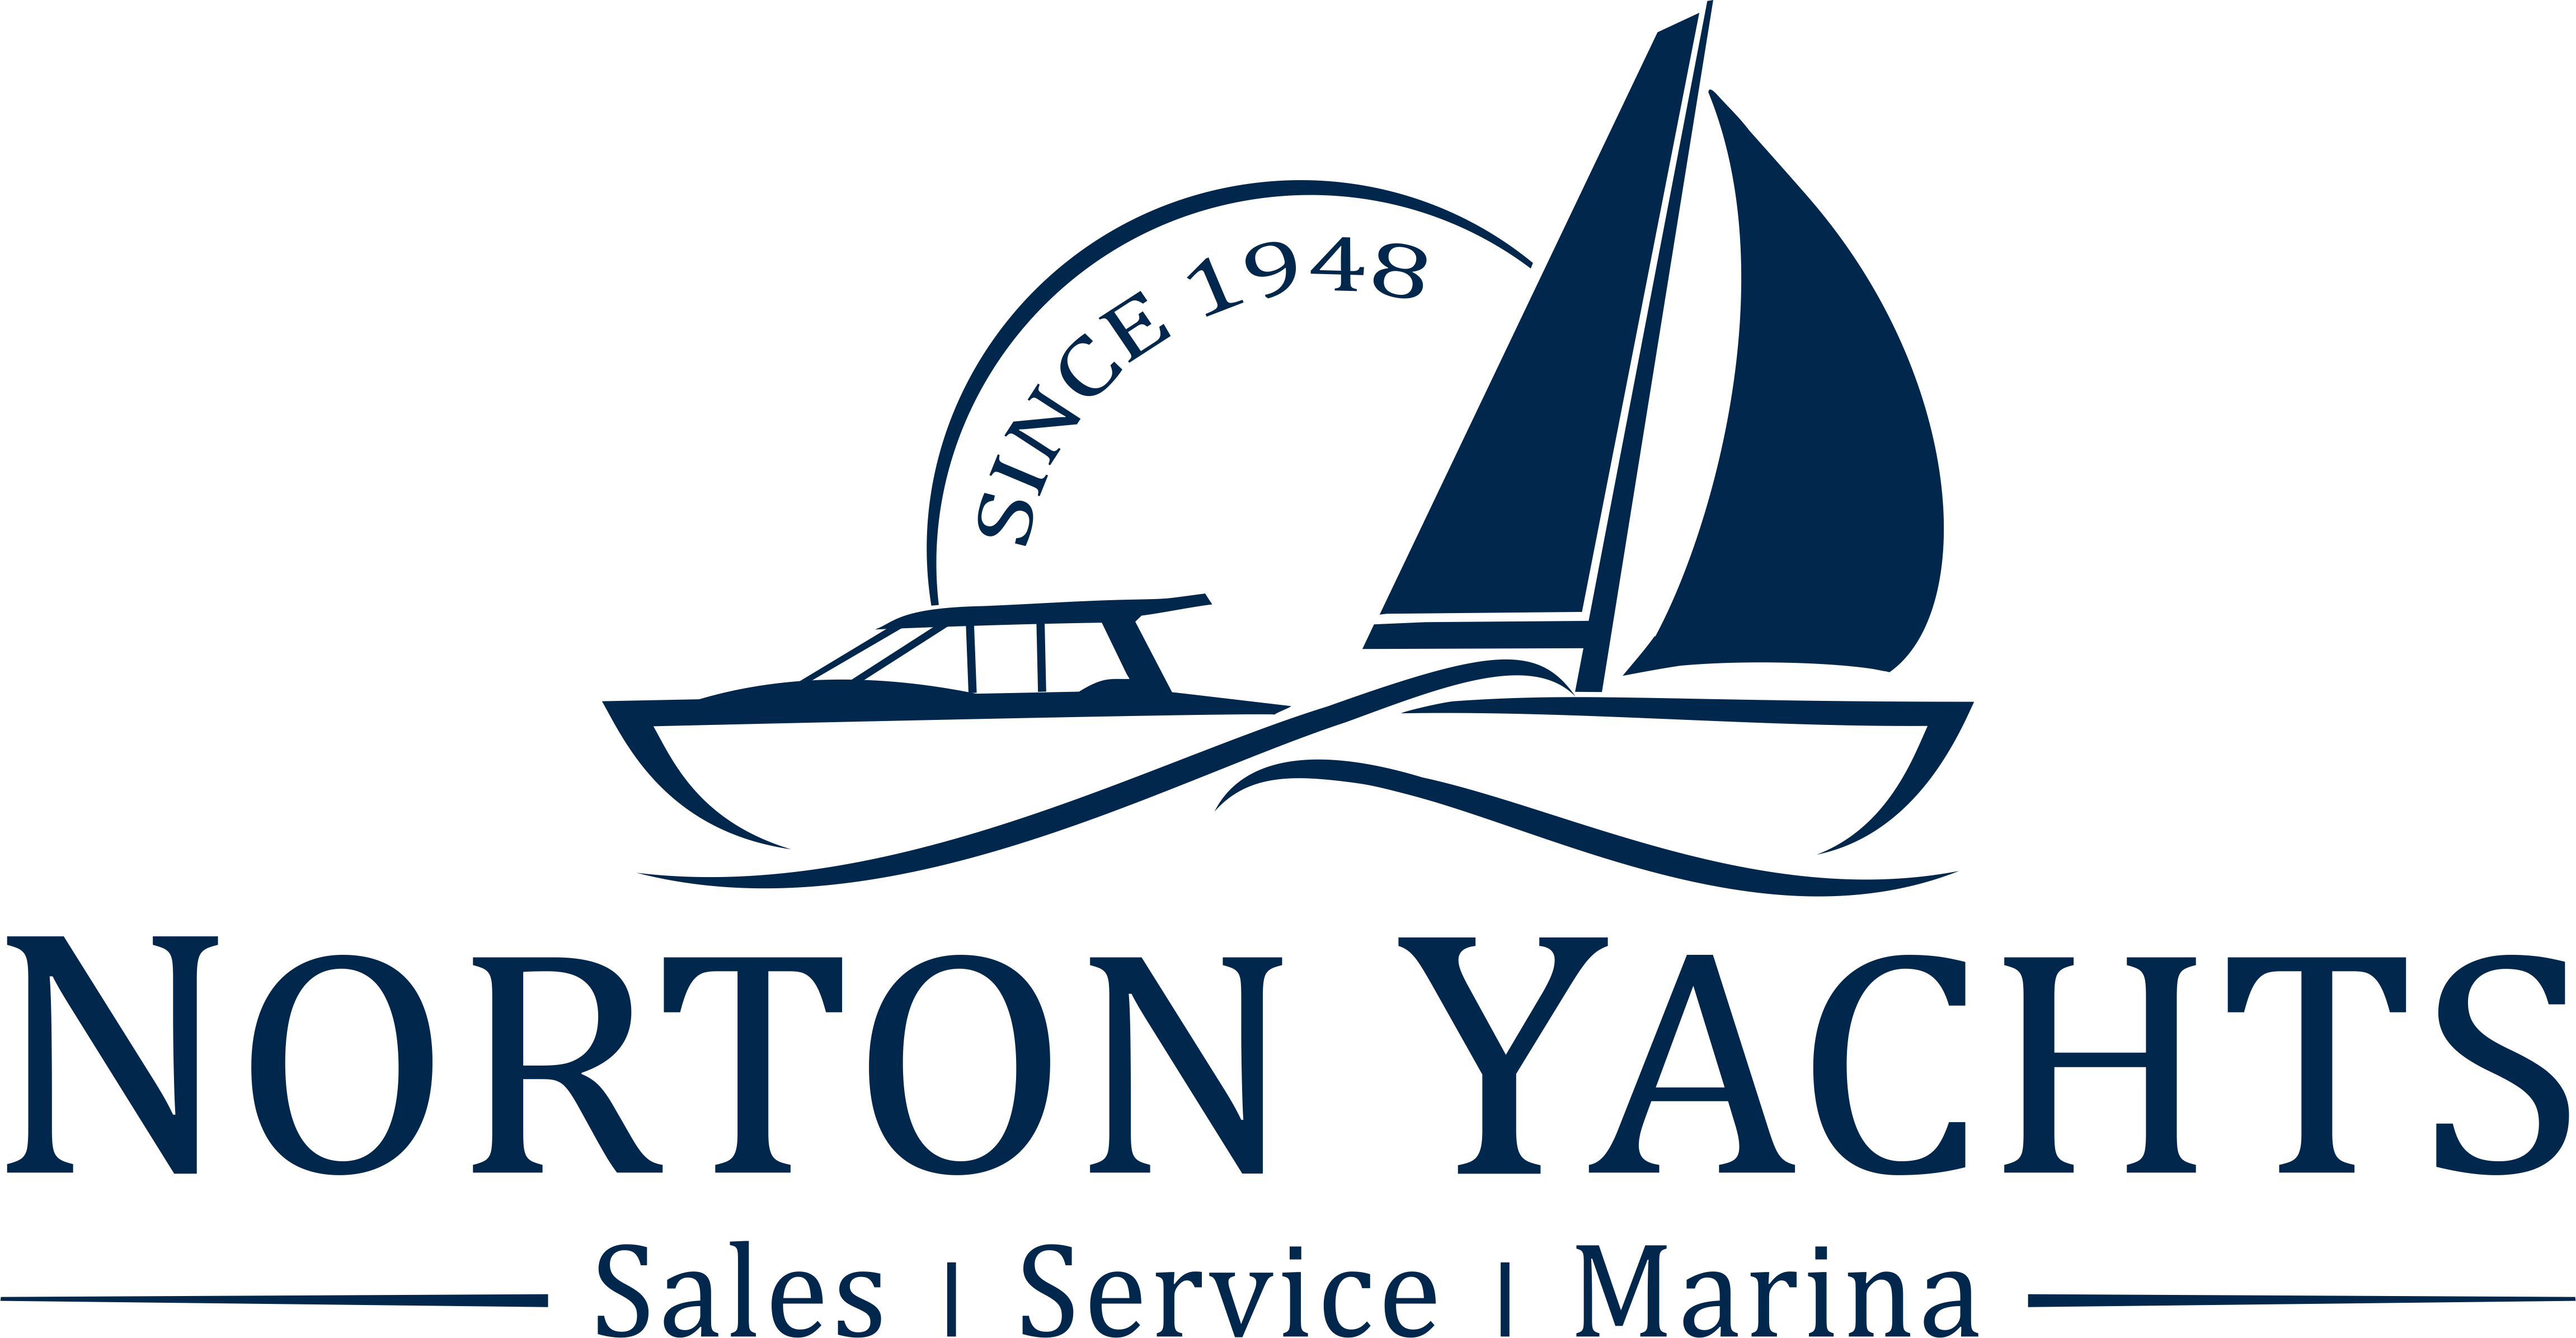 Norton's Yacht Sales, Inc.logo